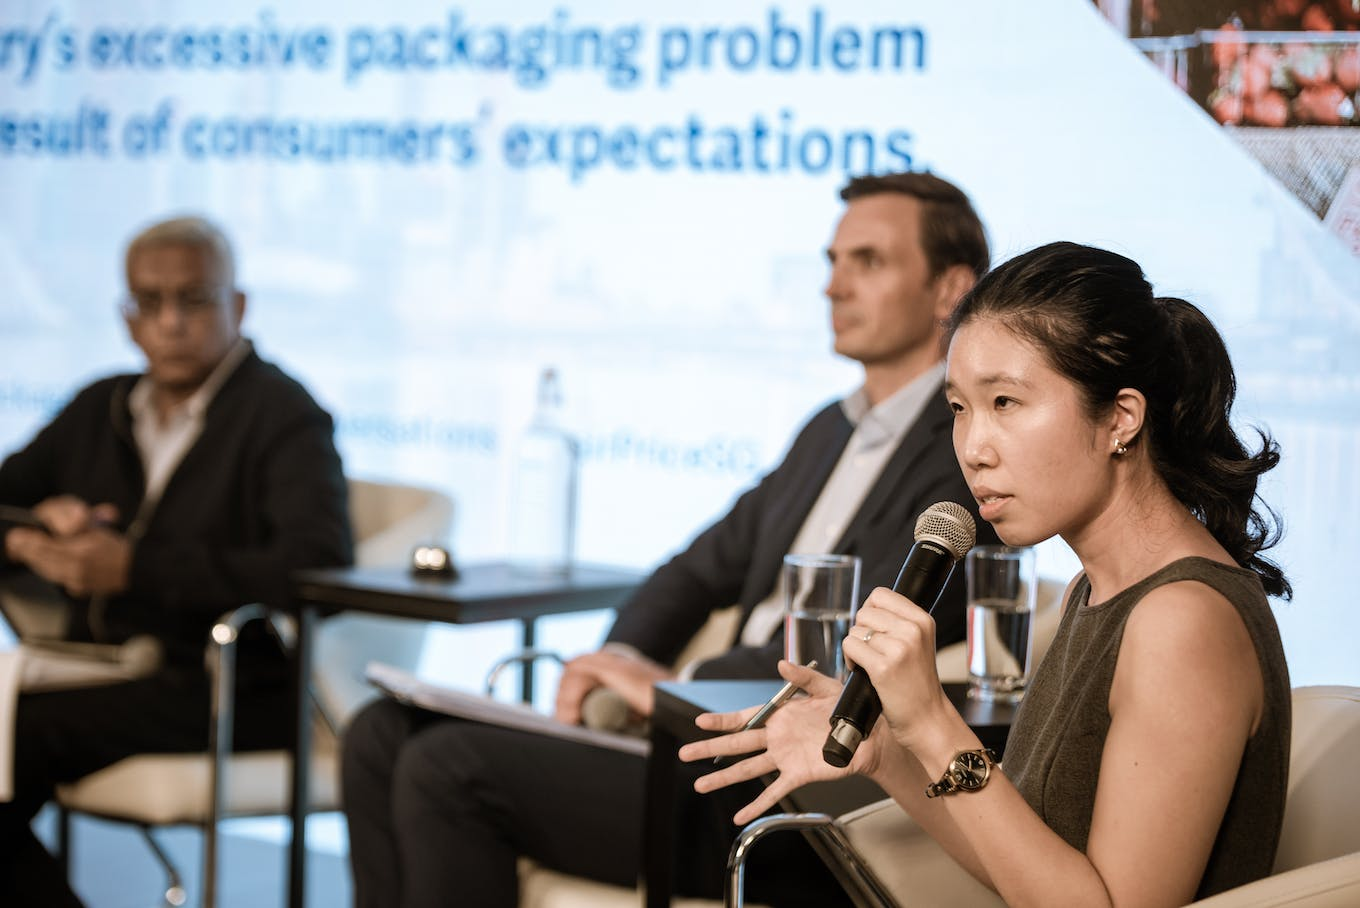 Hailin Pek makes her cases against the motion that consumer expectations are responsible for excessive packaging